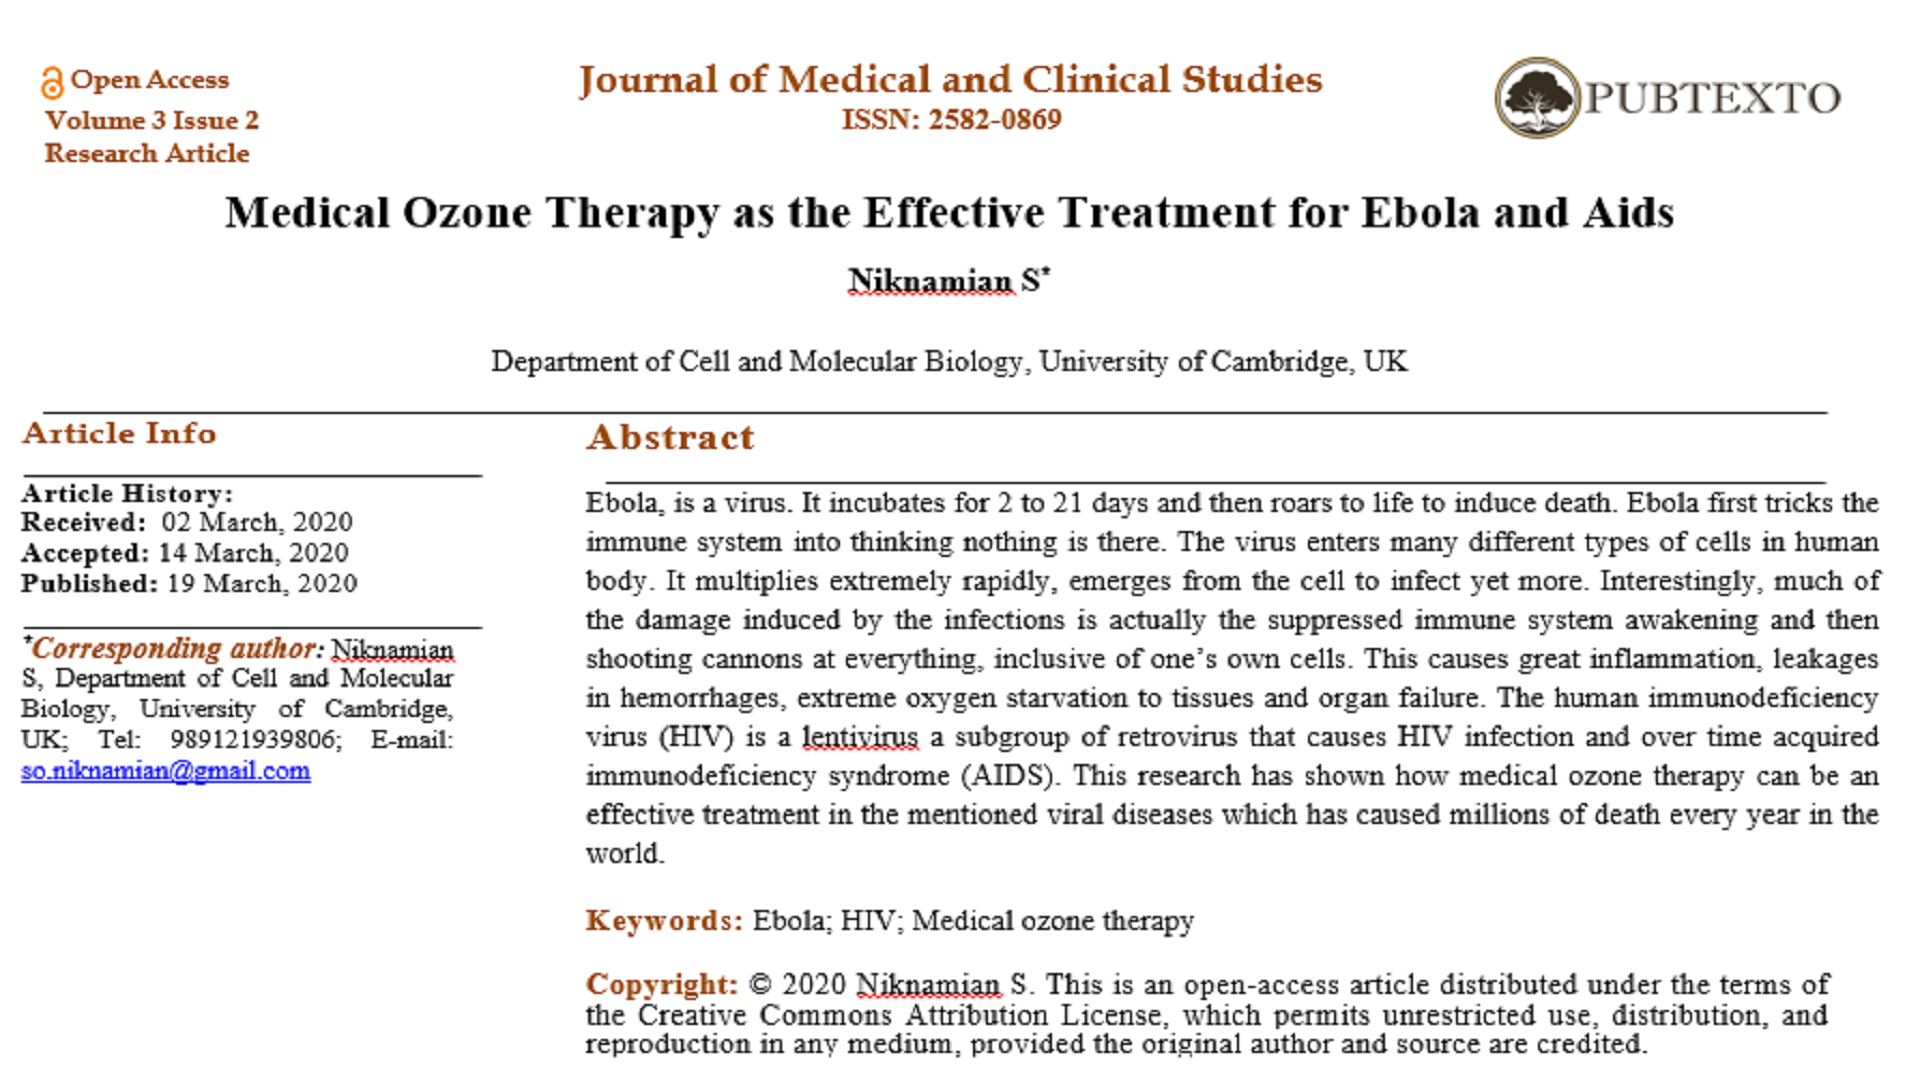 Medical Ozone Therapy as the Effective Treatment for Ebola and Aids